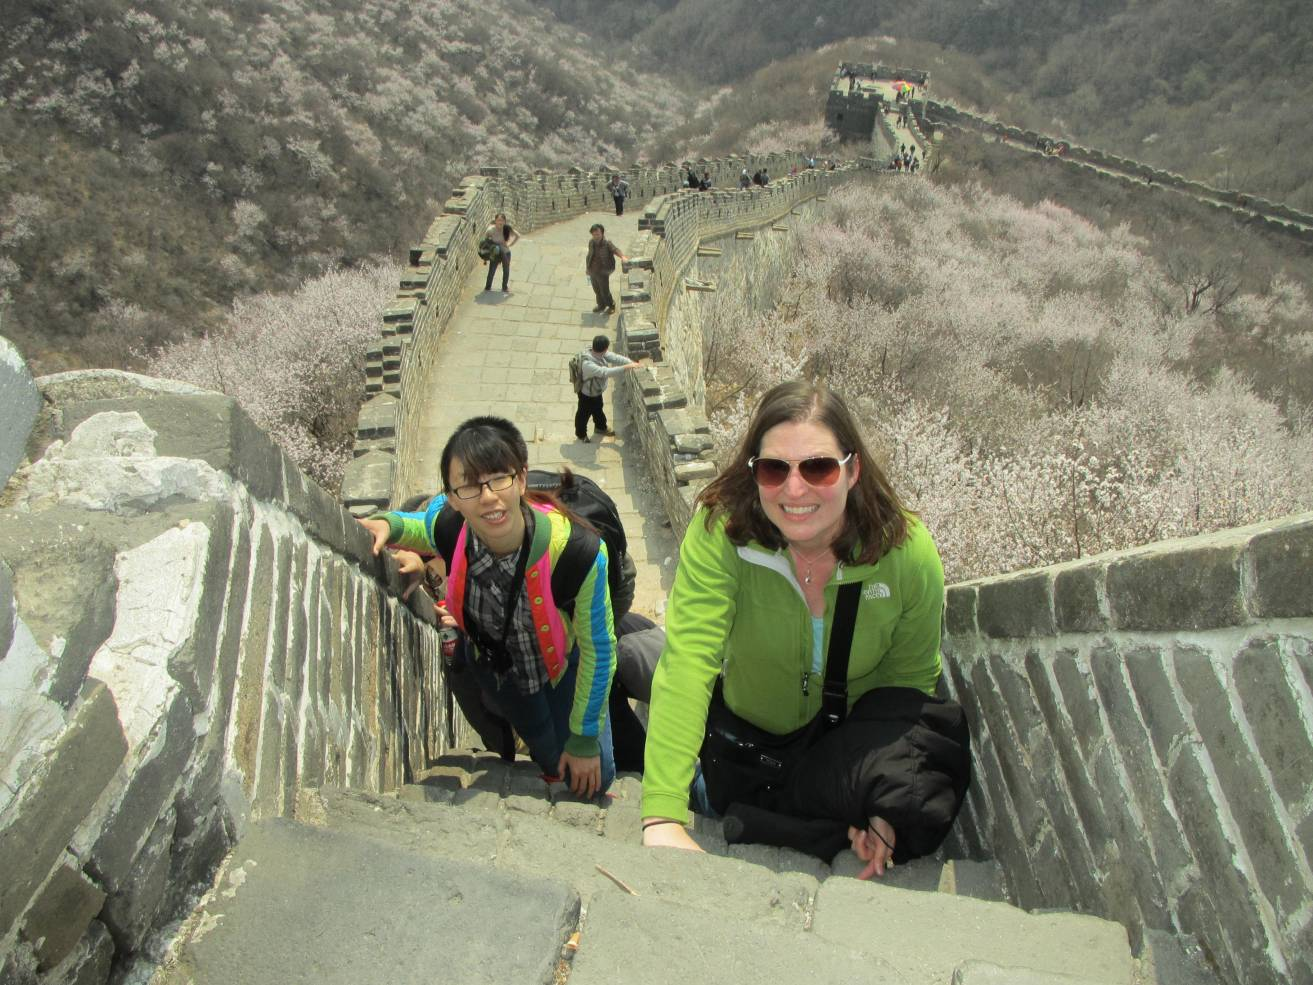 Going up a passage of steep steps. This felt more like climbing a ladder than a staircase.